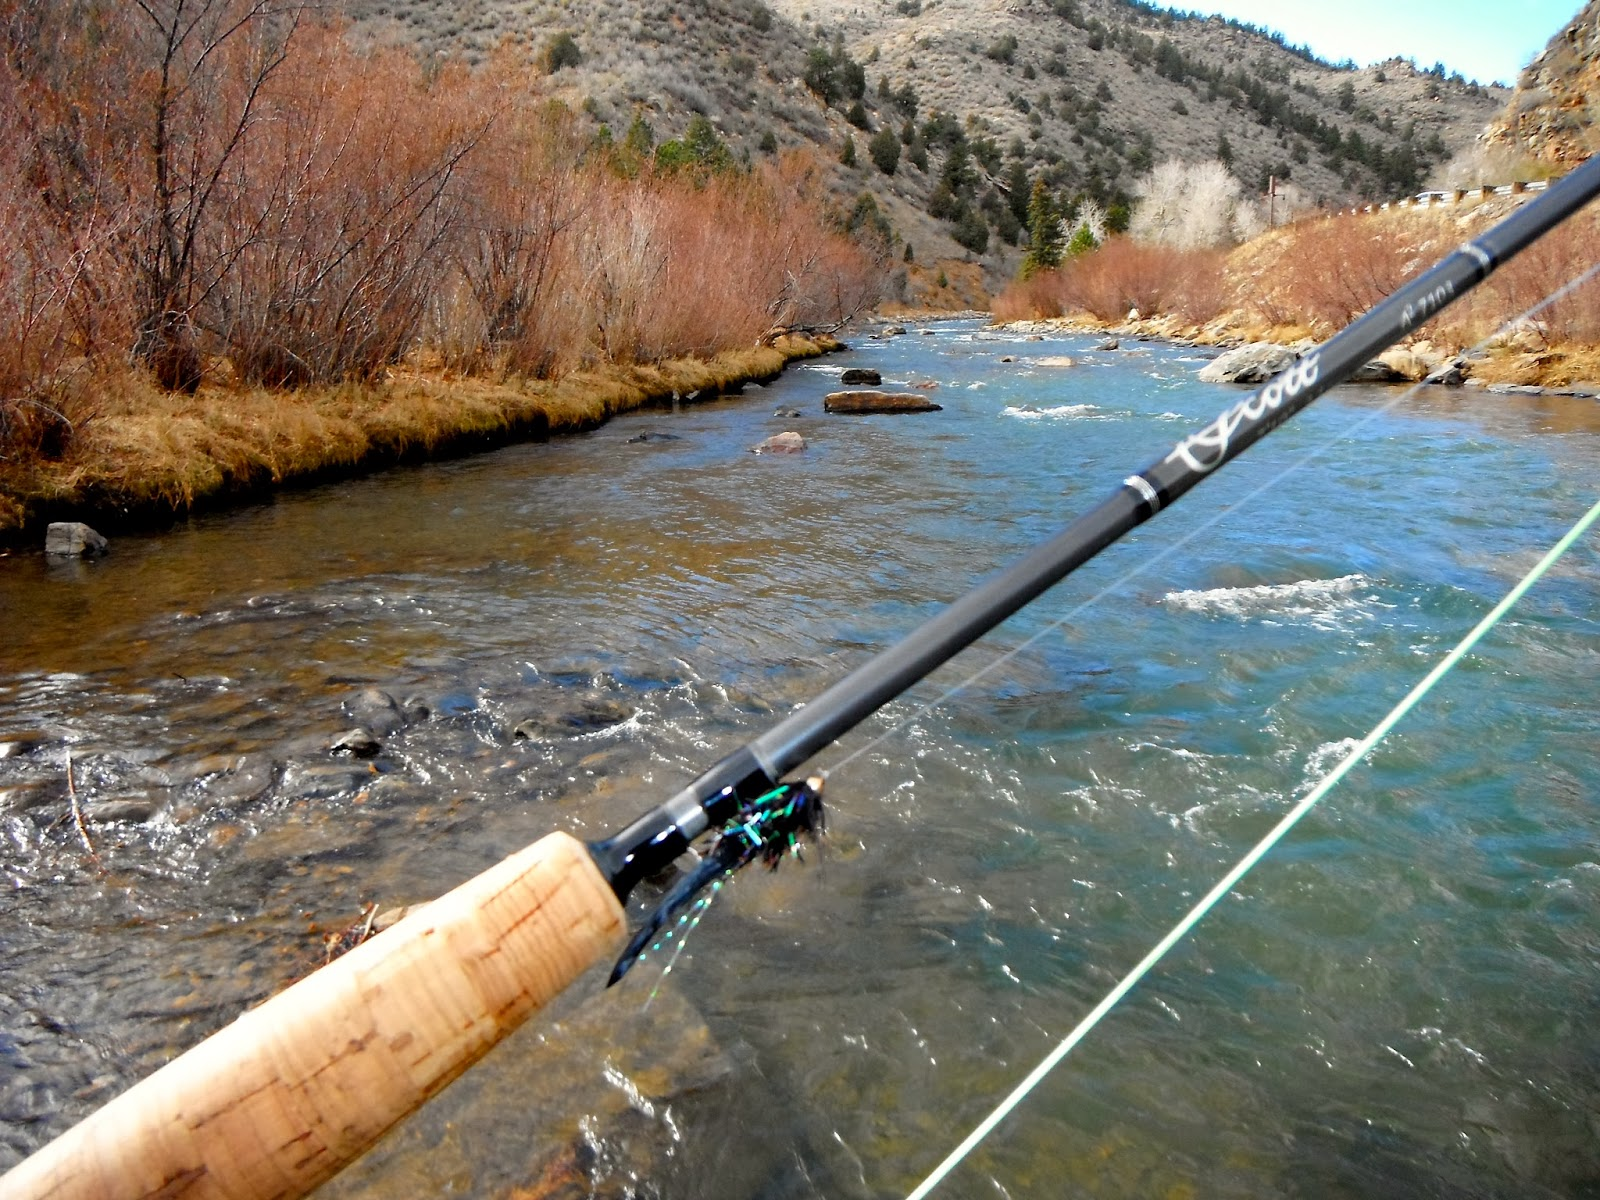 Tie and fly colorado clear creek 11 8 13 for Clear creek fishing